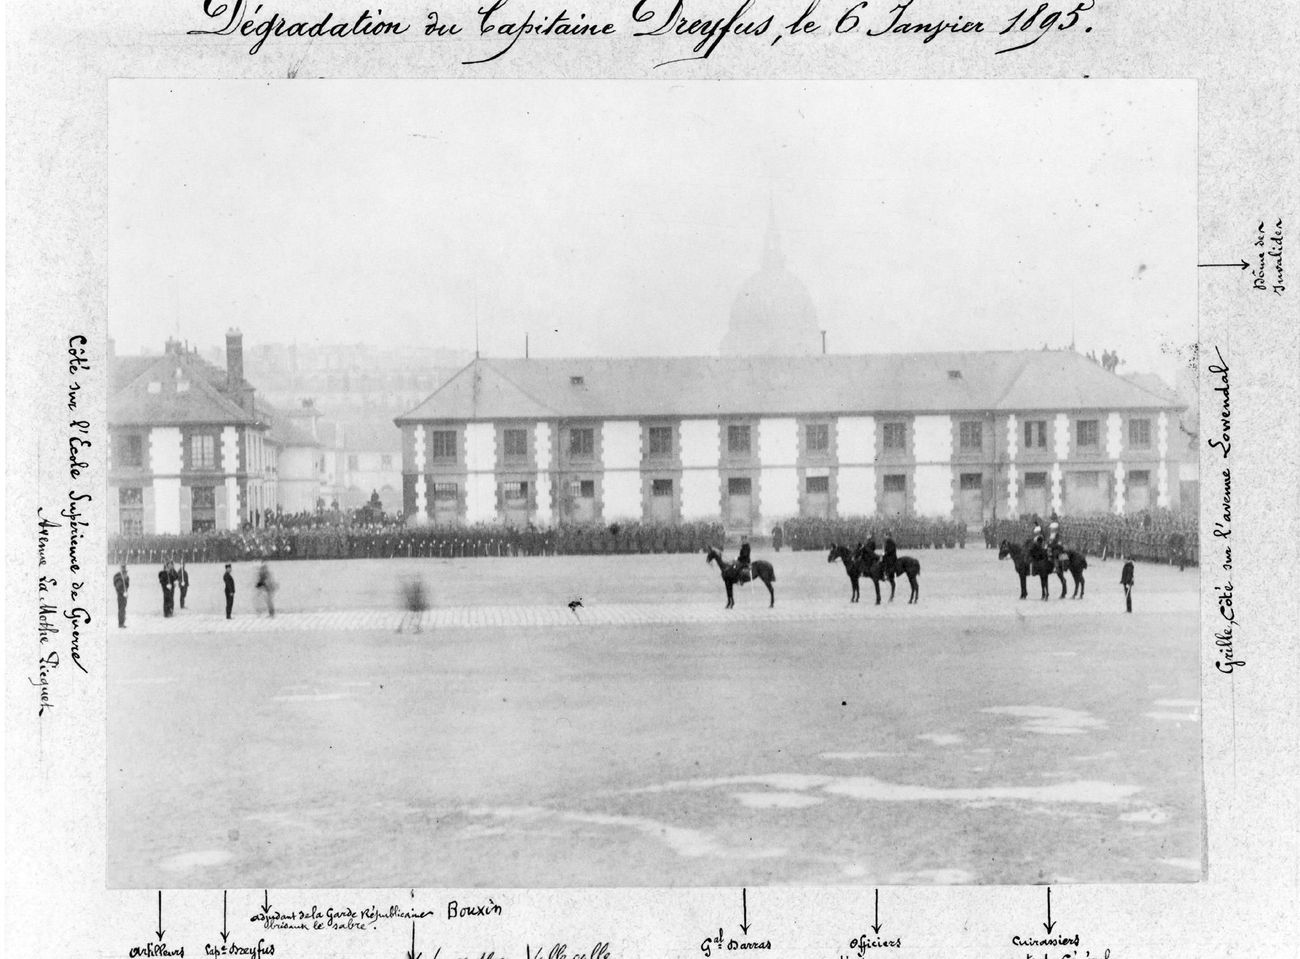 125 Years Later, The Dreyfus Affair Remains Unfortunately Relevant